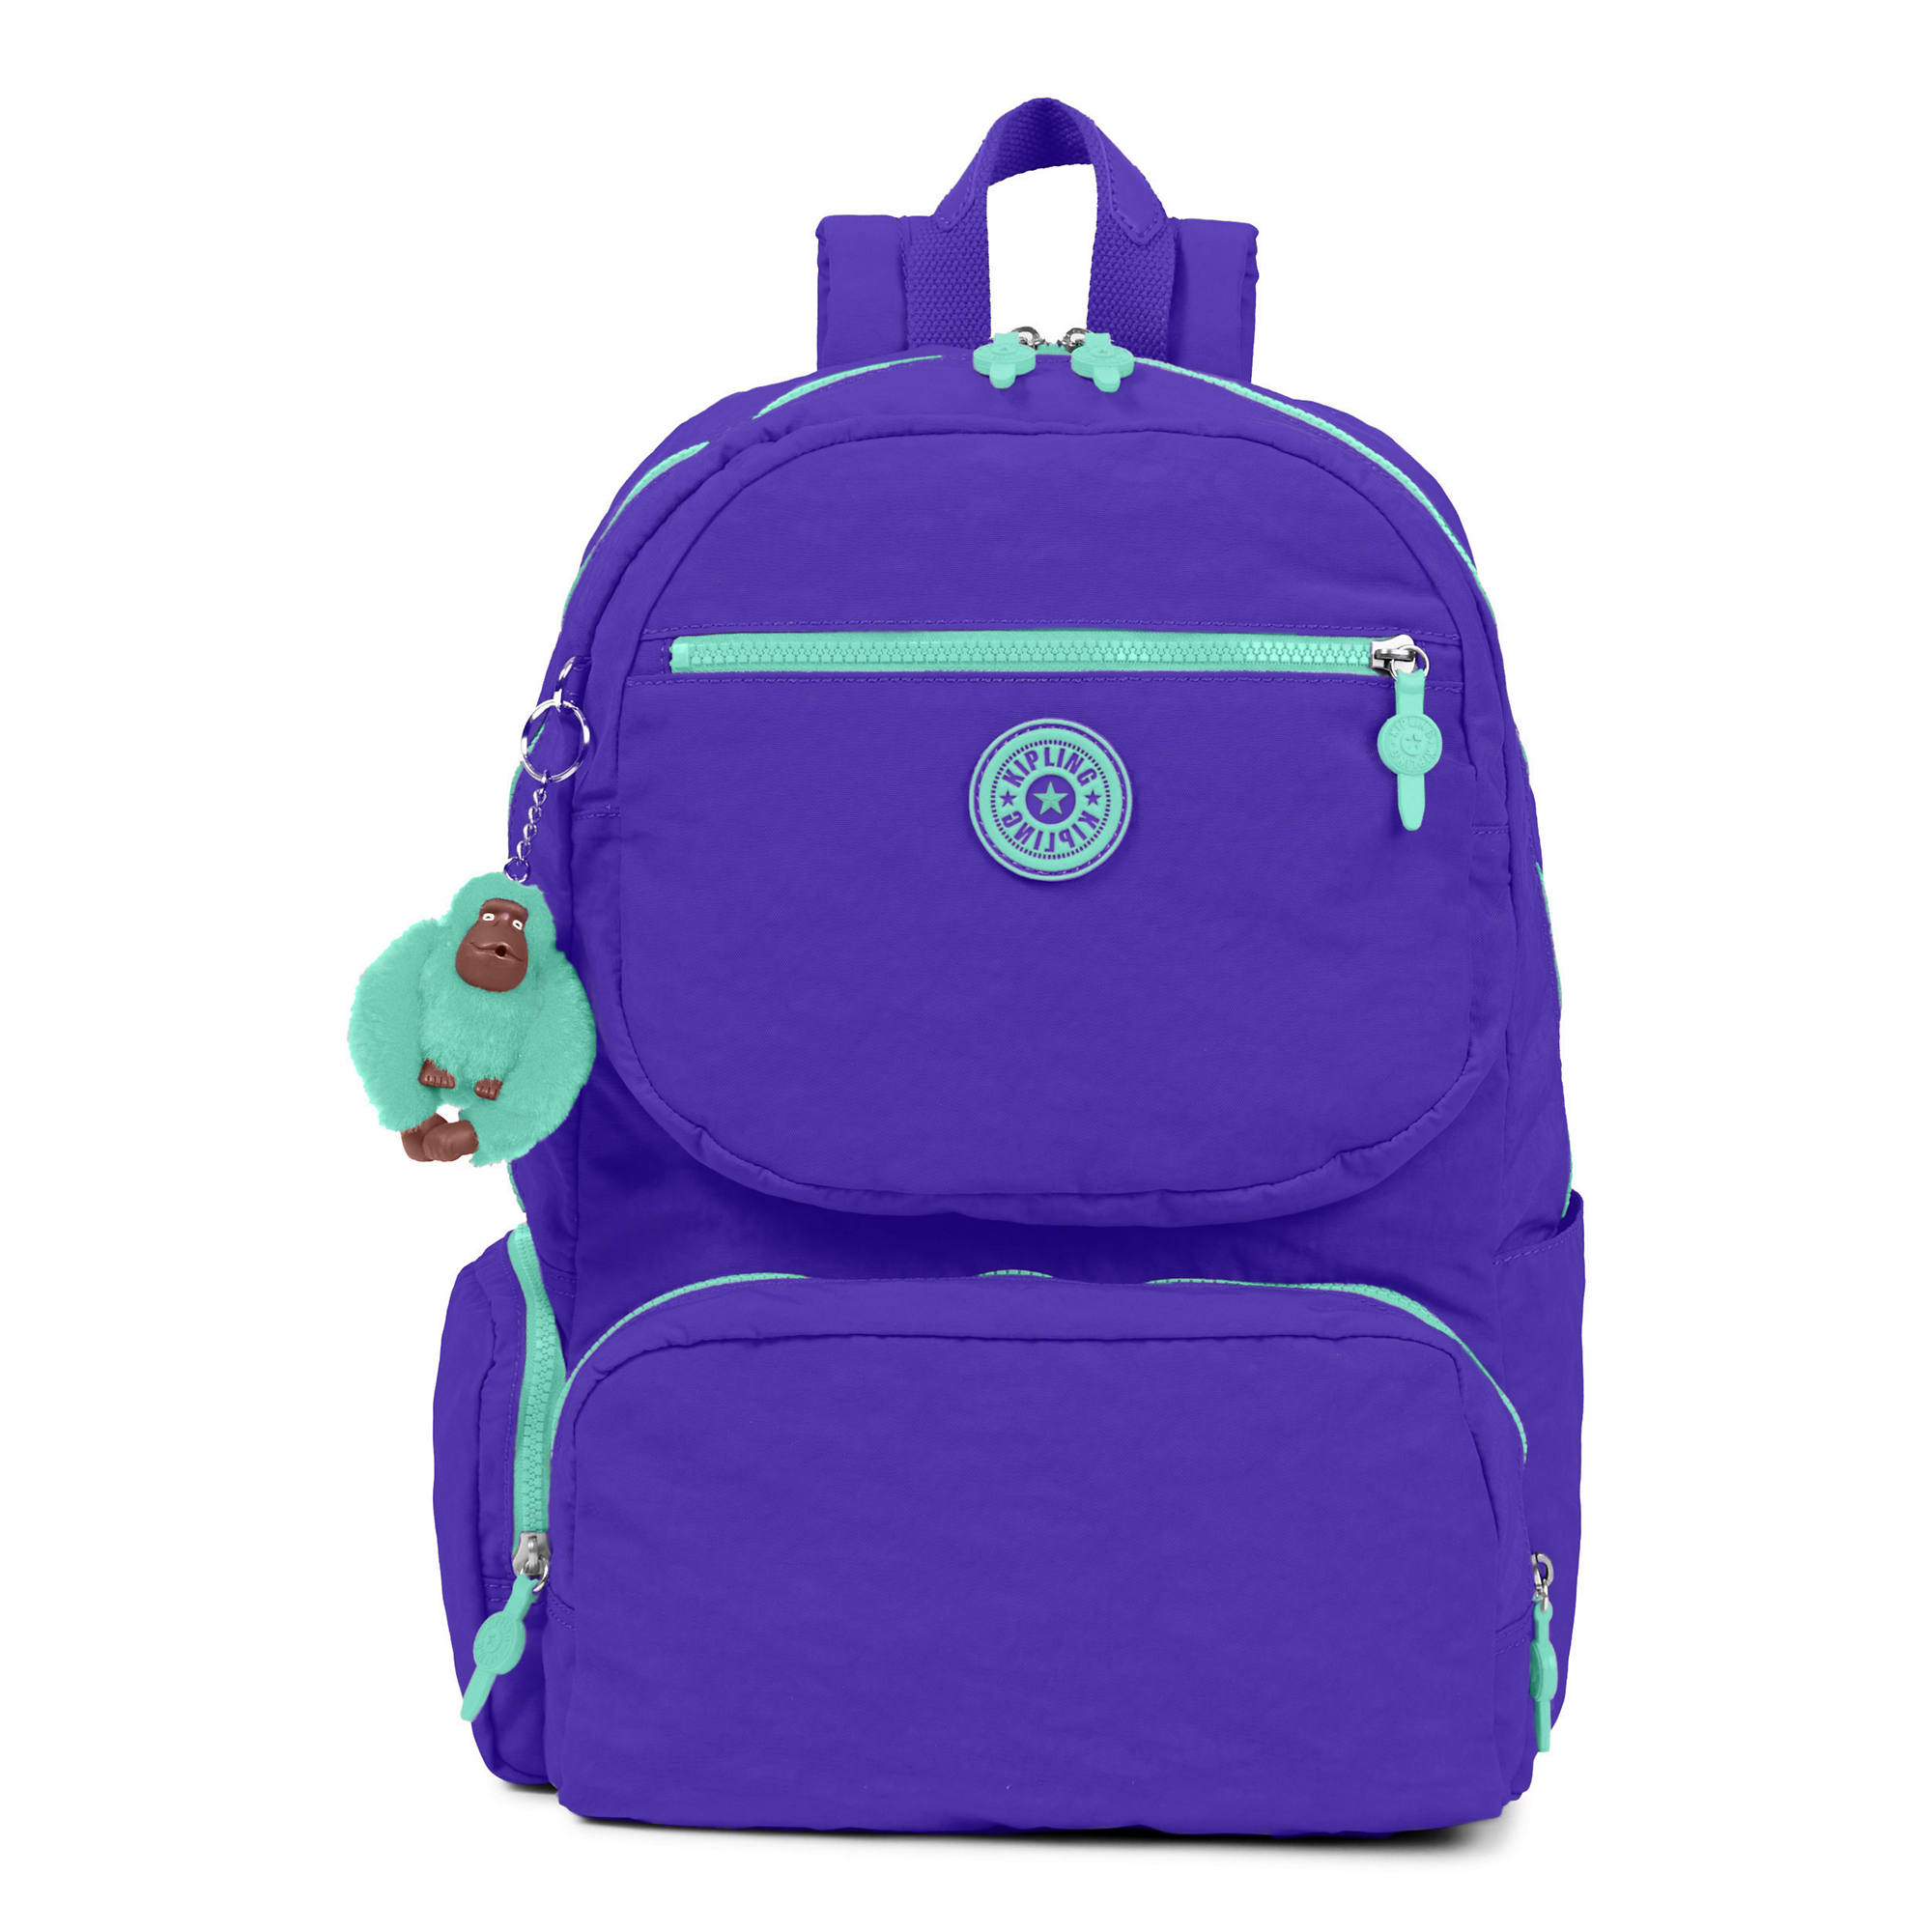 Backpacks for School - Kids School Backpacks by Kipling